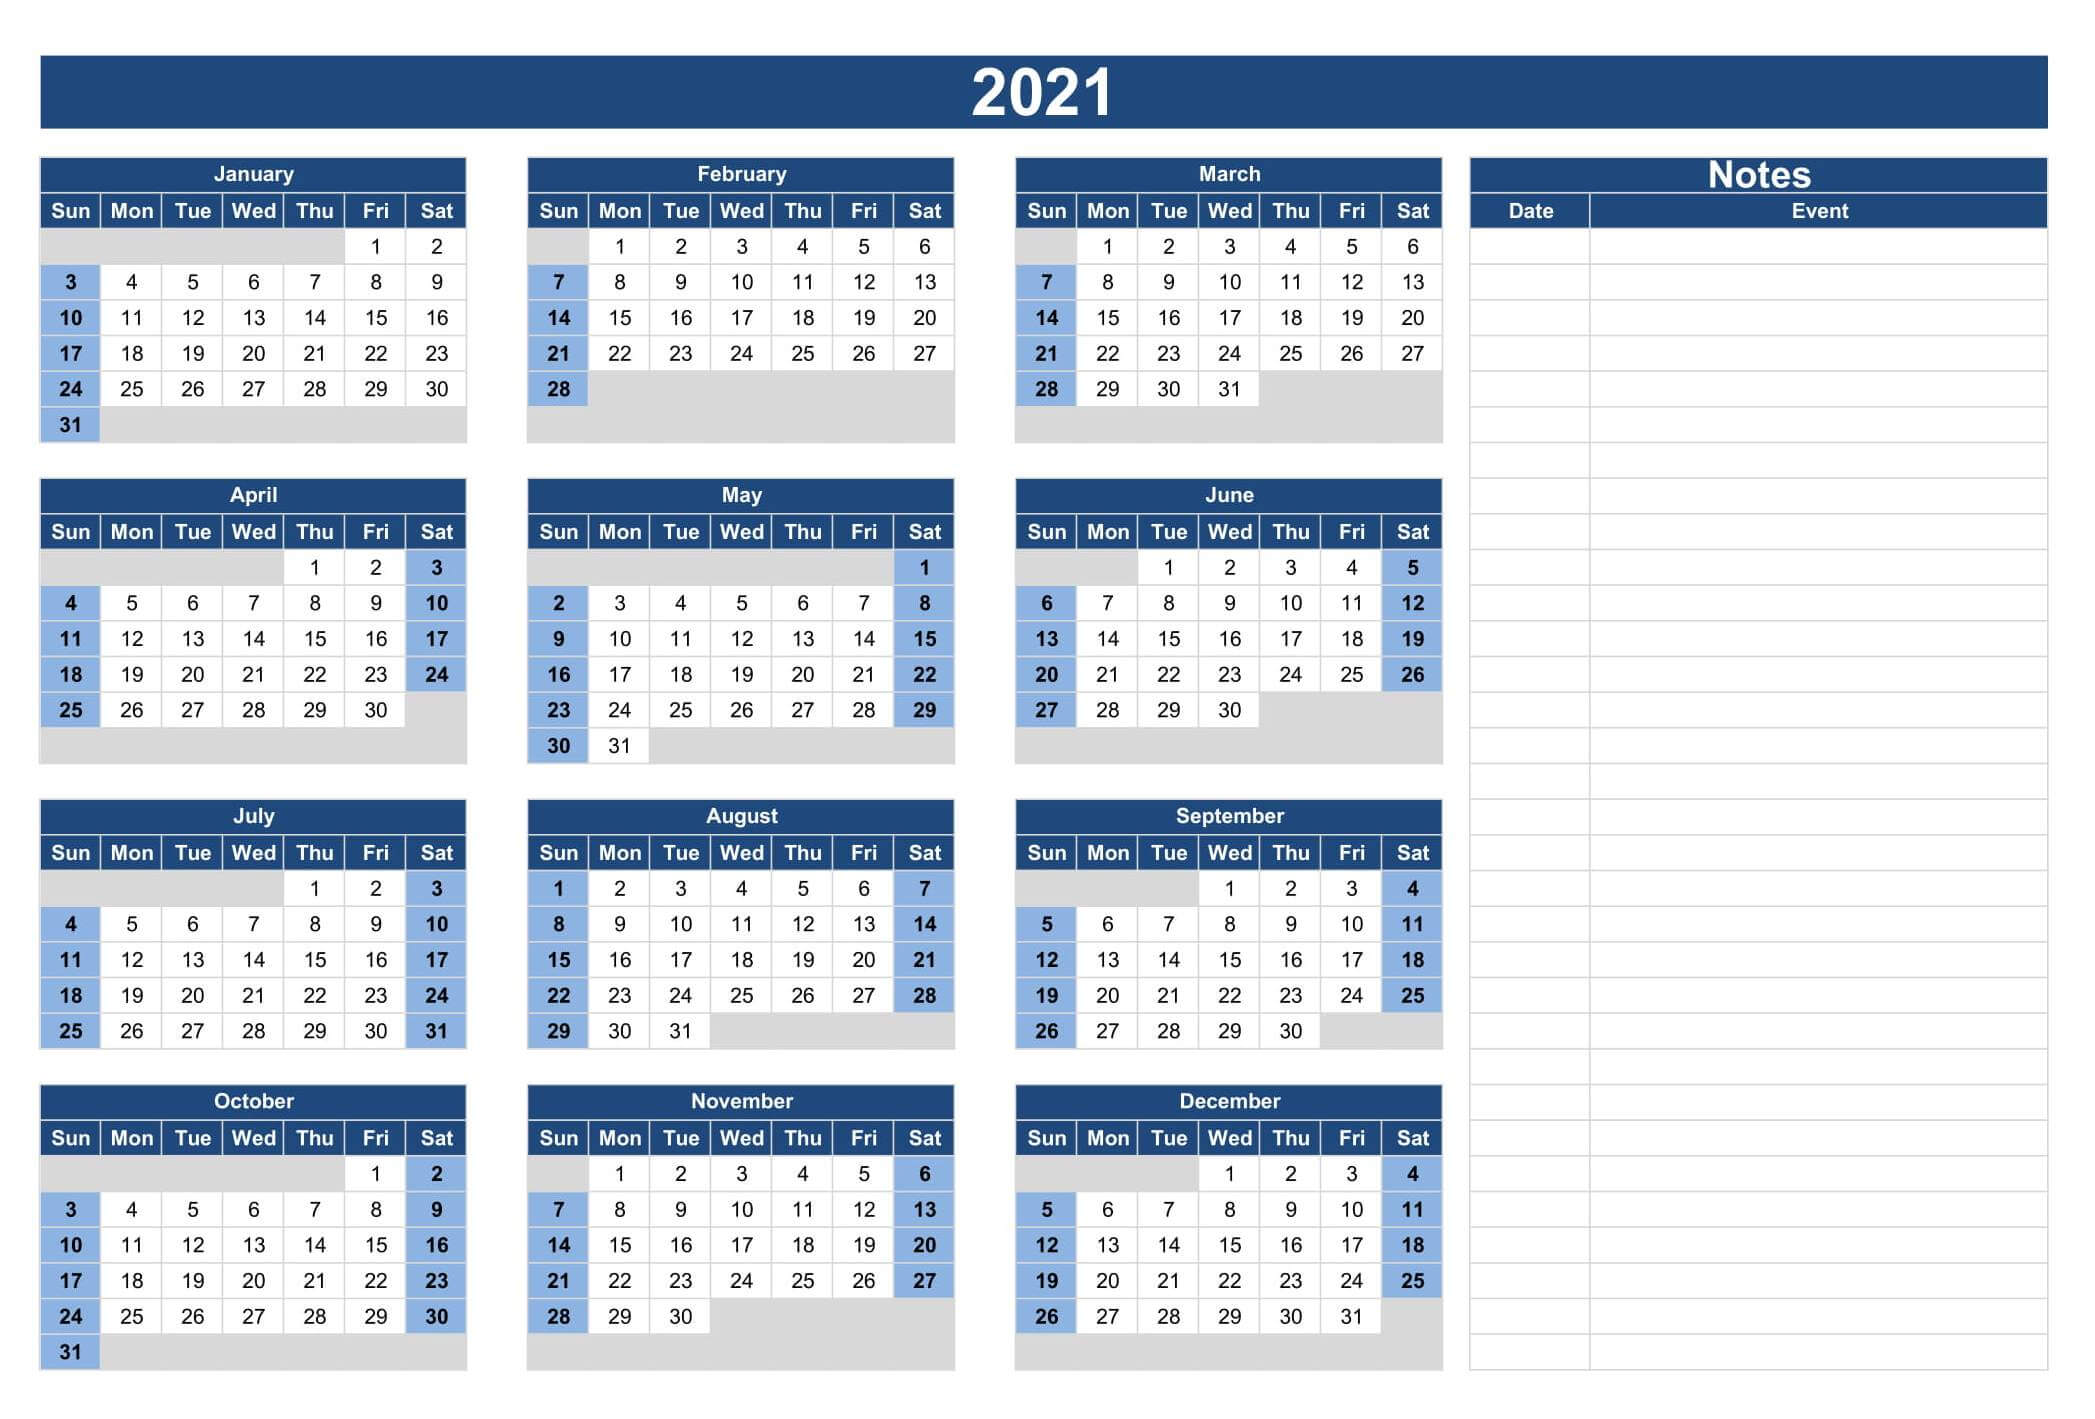 Calendar Template With Notes 2021